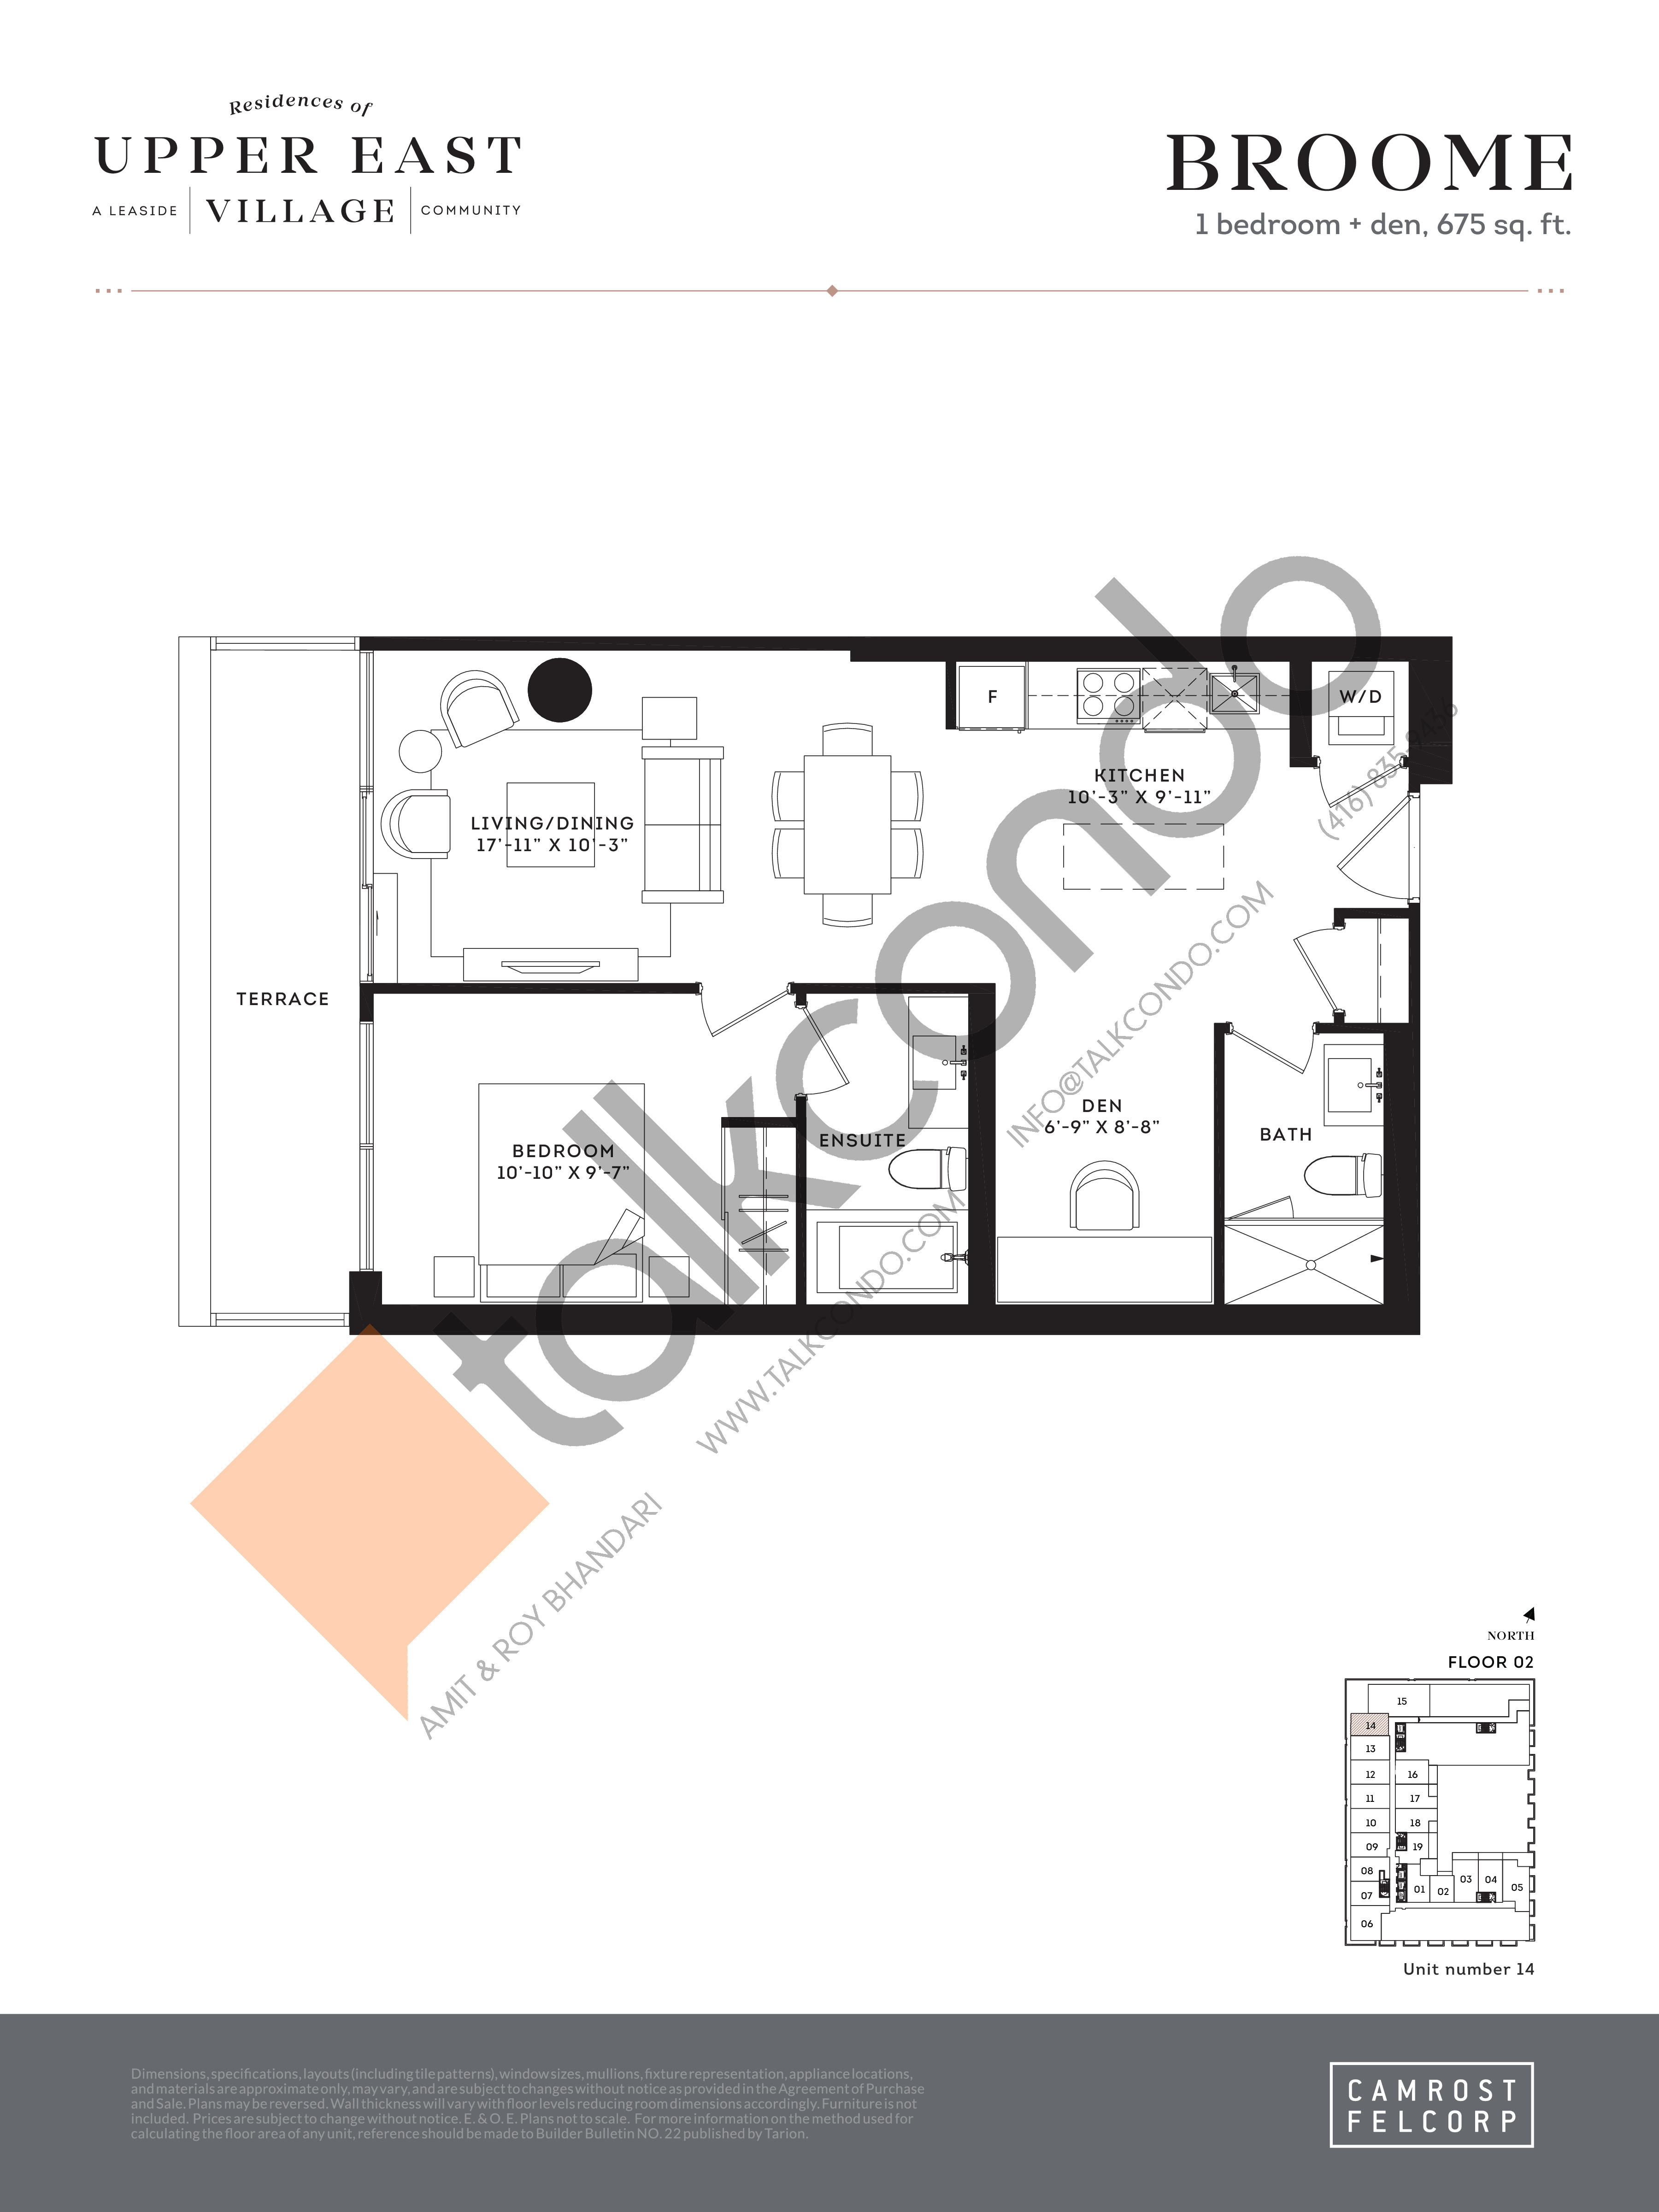 Broome Floor Plan at Upper East Village Condos - 675 sq.ft